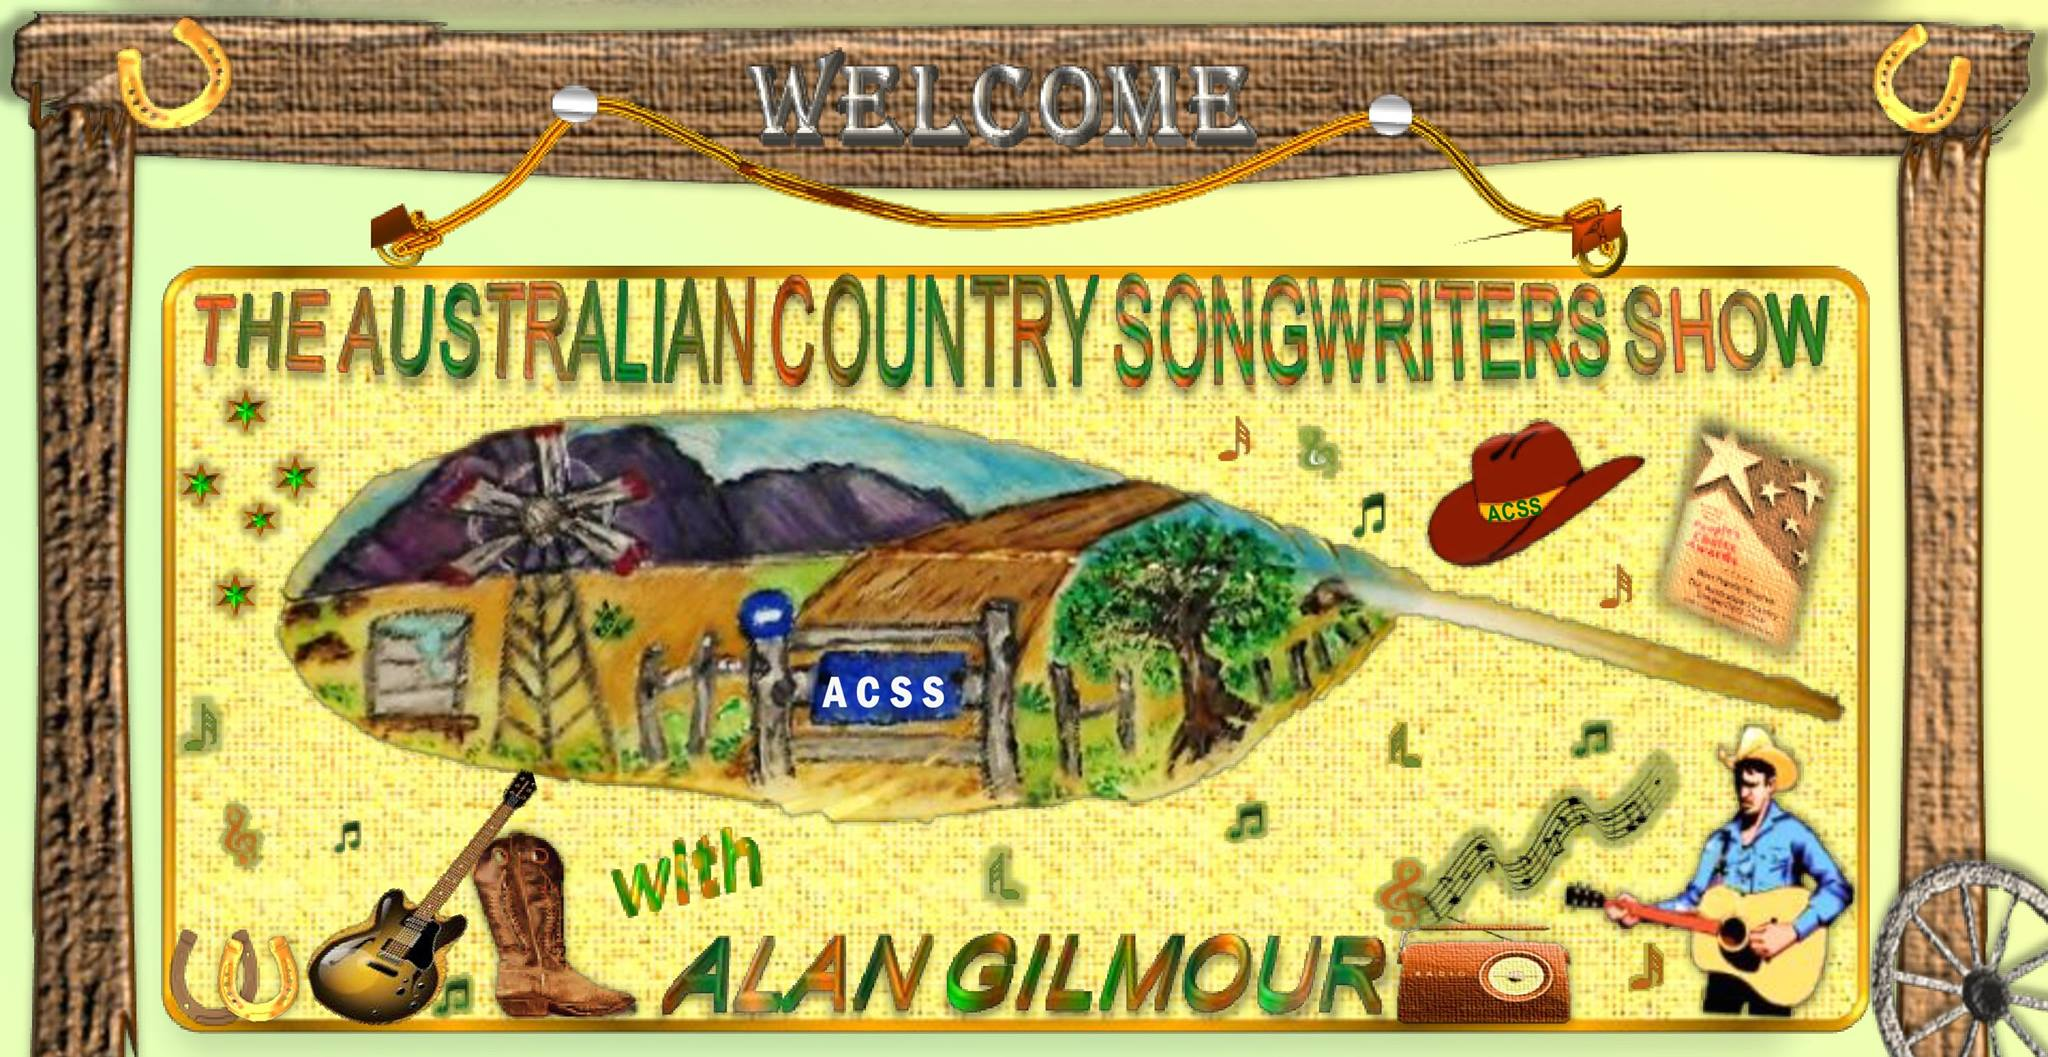 Australian Country Songwriters Show with Alan Gilmour on Seymour FM